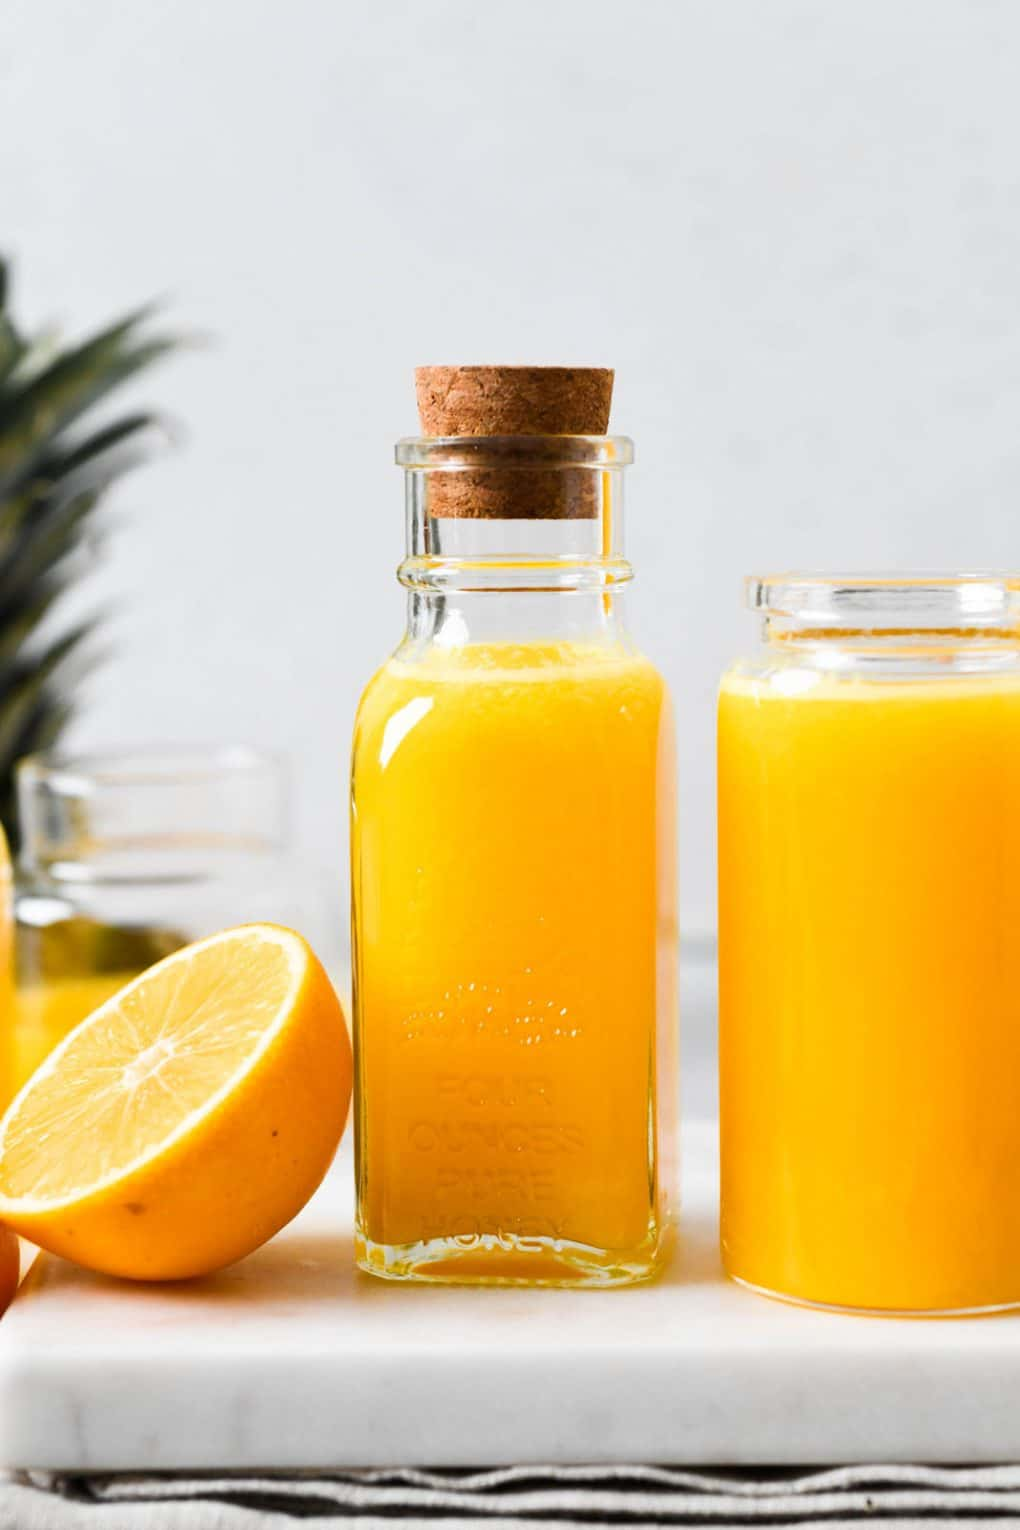 Straight on shot of two small glass jars filled with bright yellow immune boosting wellness shots. Next to a lemon cut in half. On a light colored background.